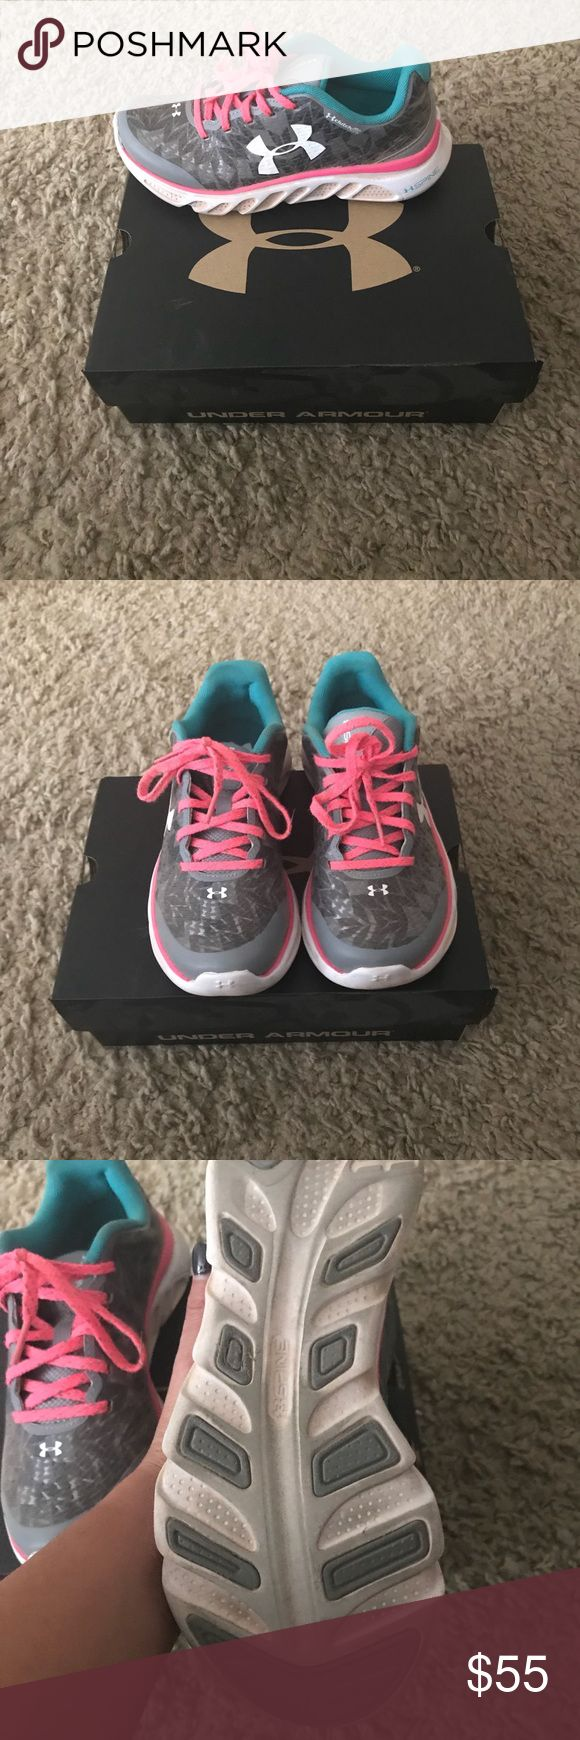 Youth under armour shoes-Flash sale! 🎉 Worn twice, also fit women's size 6. No flaws, can ship with or without the box. Under Armour Shoes Sneakers